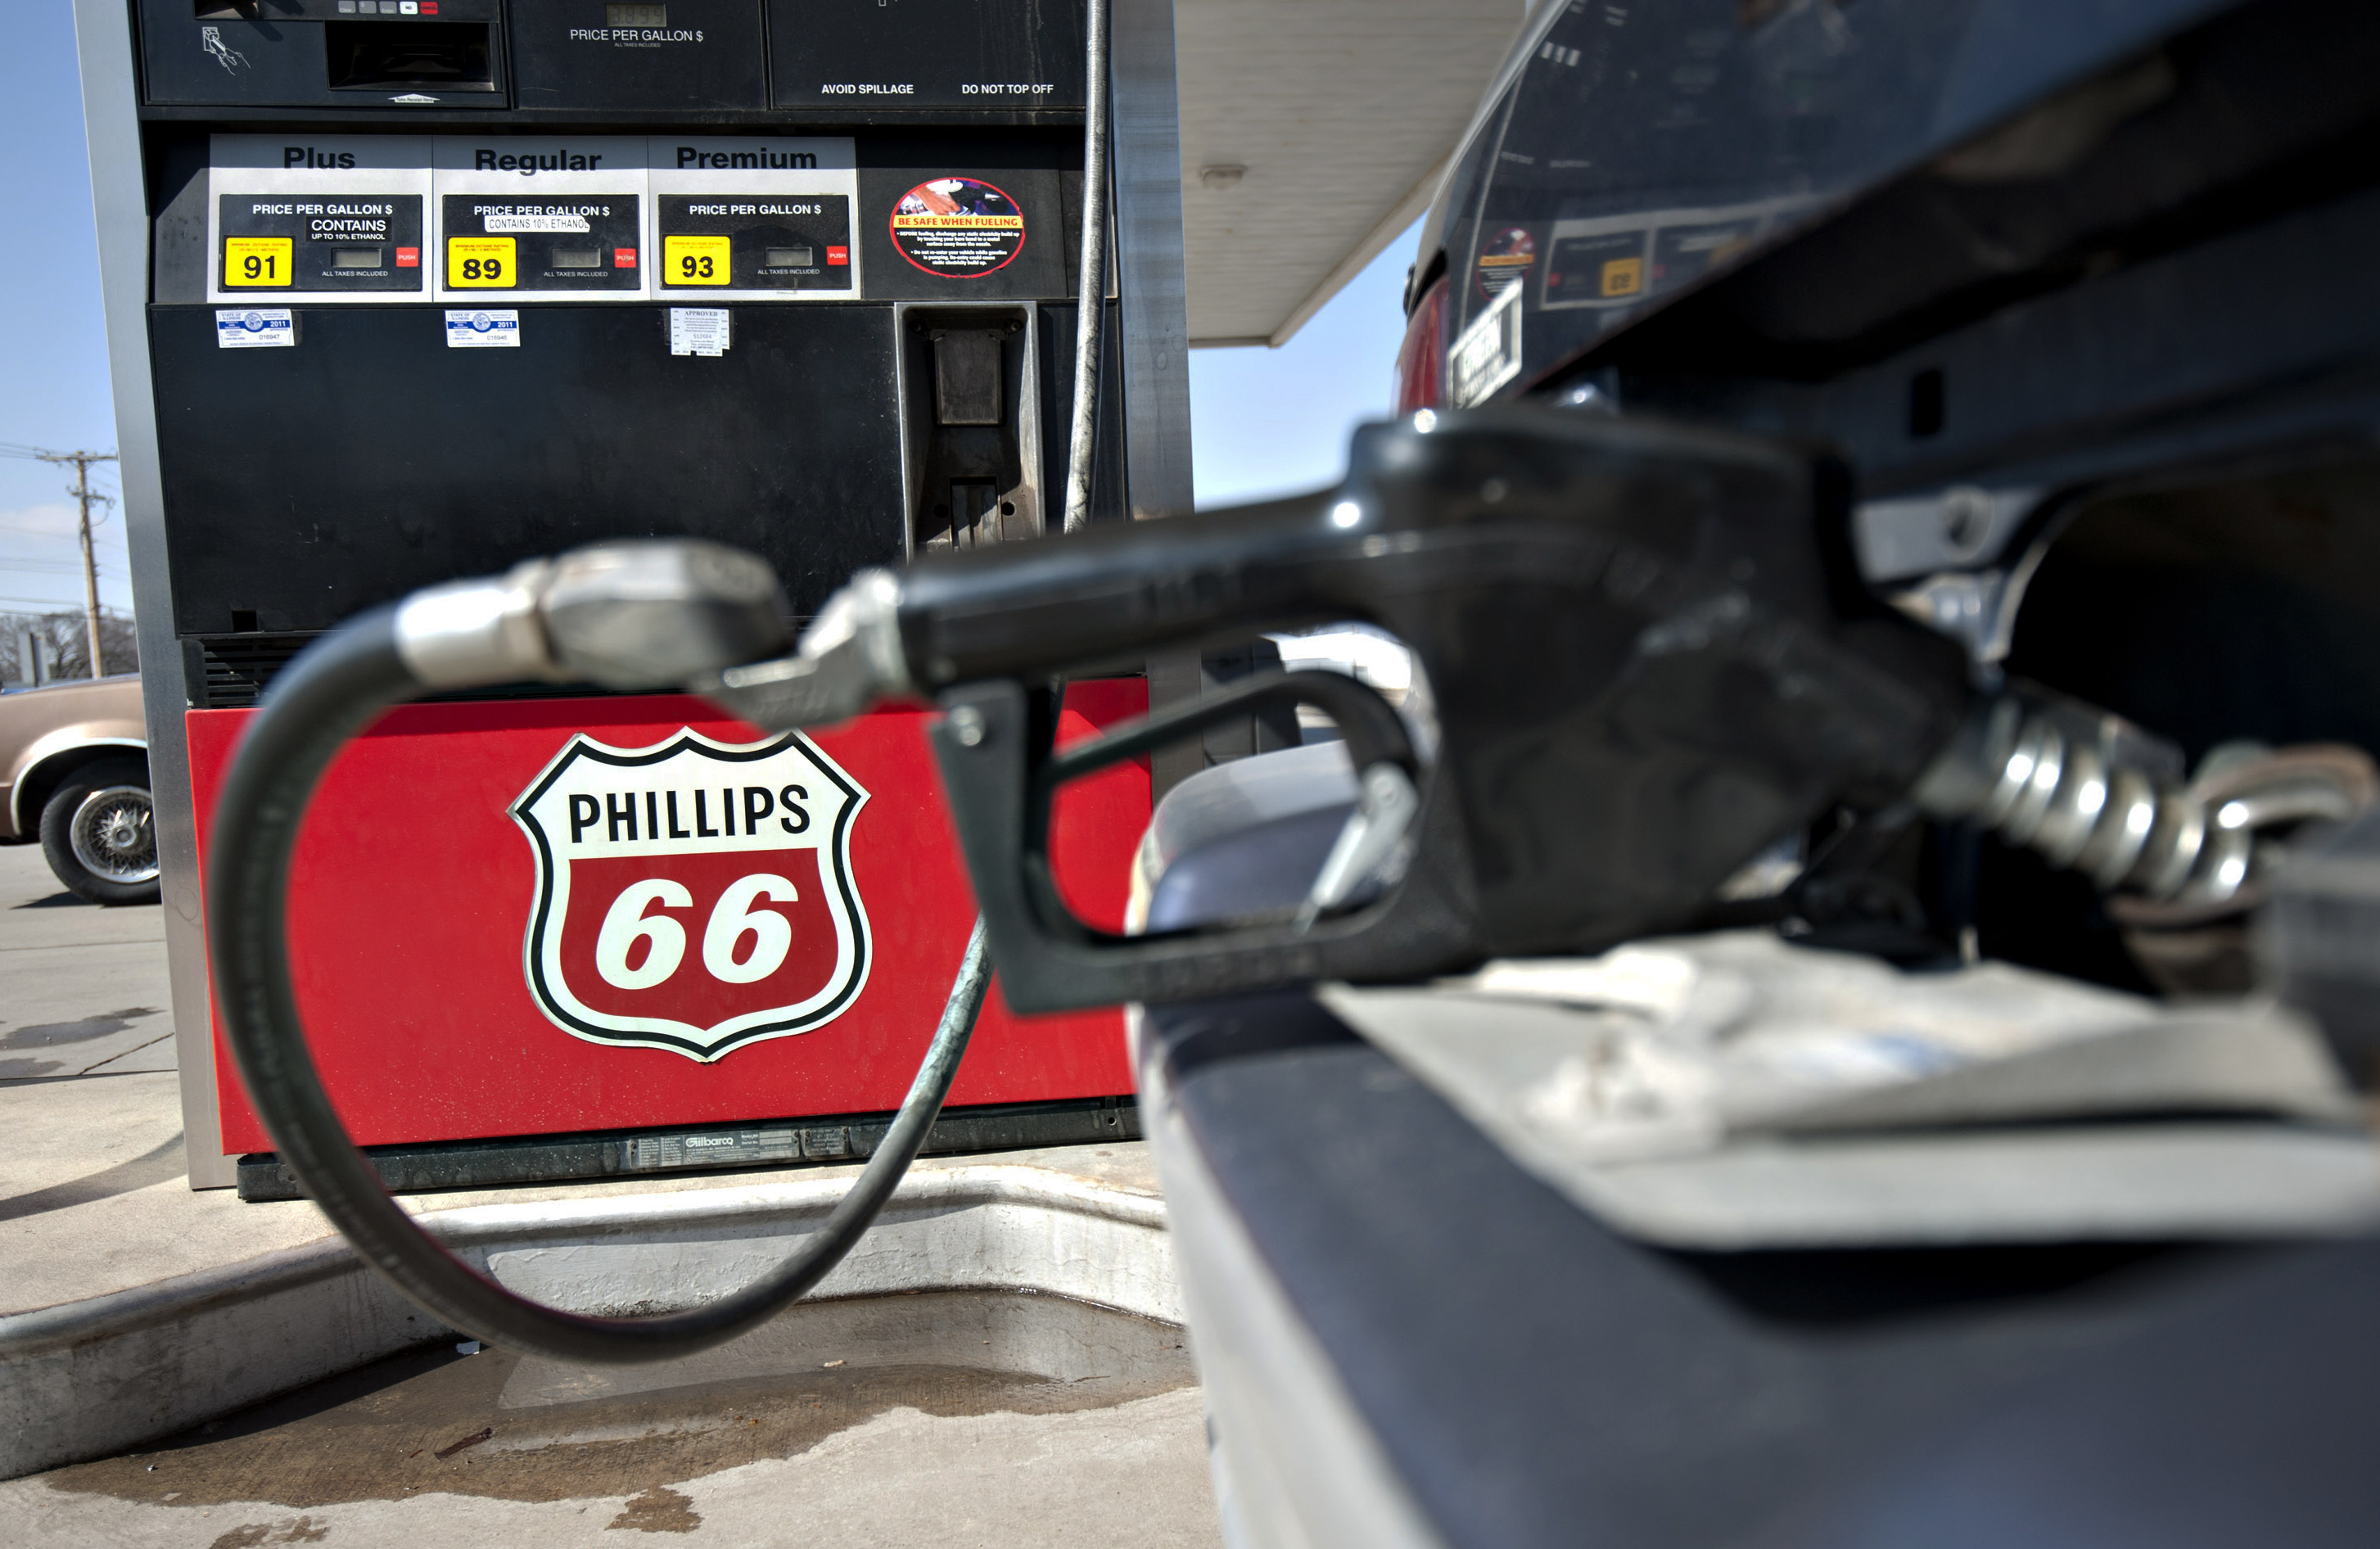 Phillips 66 The refining company reported a 4% dip in revenue in 2013 — the first full-year results since it separated from the exploration division of ConocoPhillips in 2012. Results were hurt by lower average prices for crude oil and petroleum products. Phillips 66 is planning to spend about 40% more on capital expenditures in 2014 compared to the prior year, as the company invests in its midstream and chemicals segments to capitalize on North America's energy renaissance.